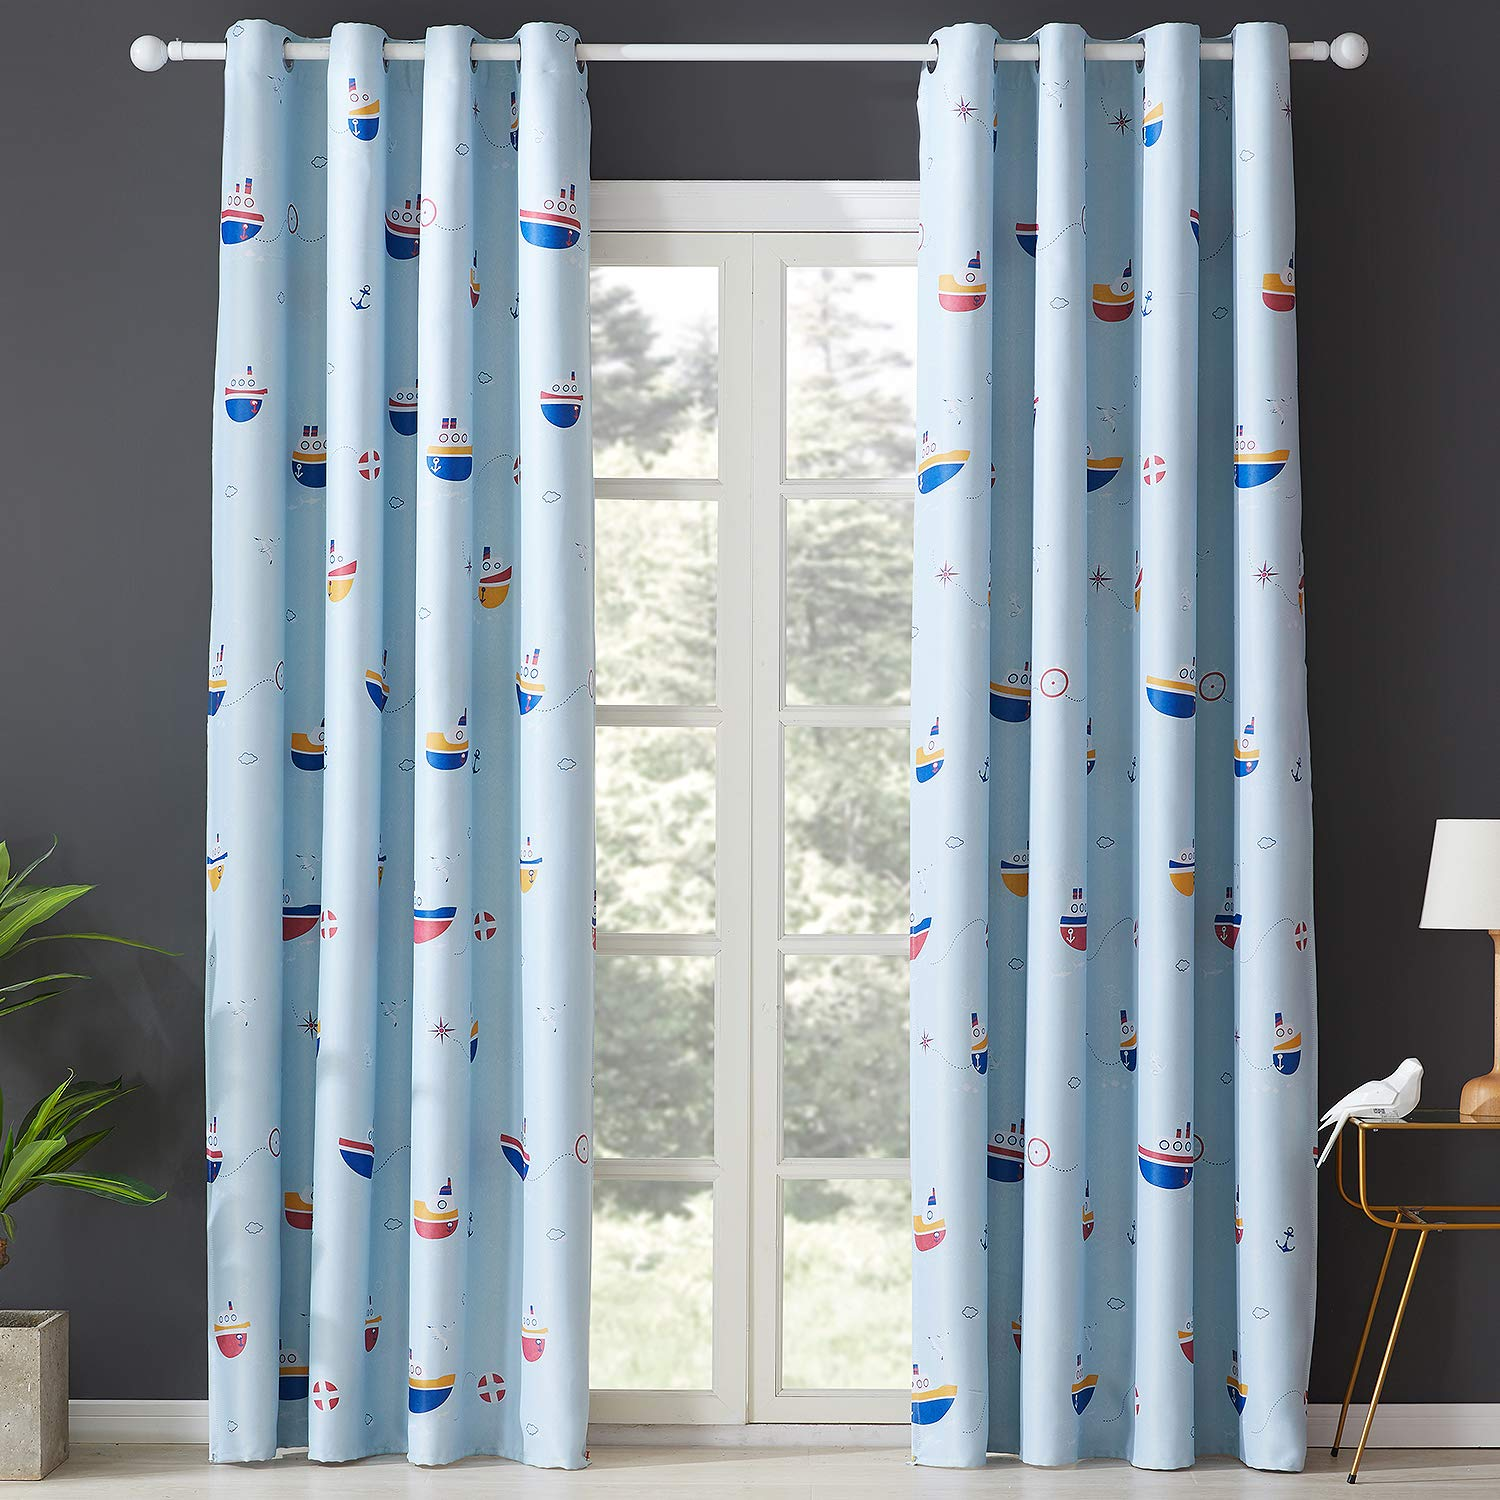 Topfinel Printed Kids Curtains Semi Blackout for Children Bedroom Eyelet Thermal Insulated Room Darkening Cute Car Patterned Curtains for Nursery 46x54 Inch Drop Set of 2 Panels Grey 117cmx137cm